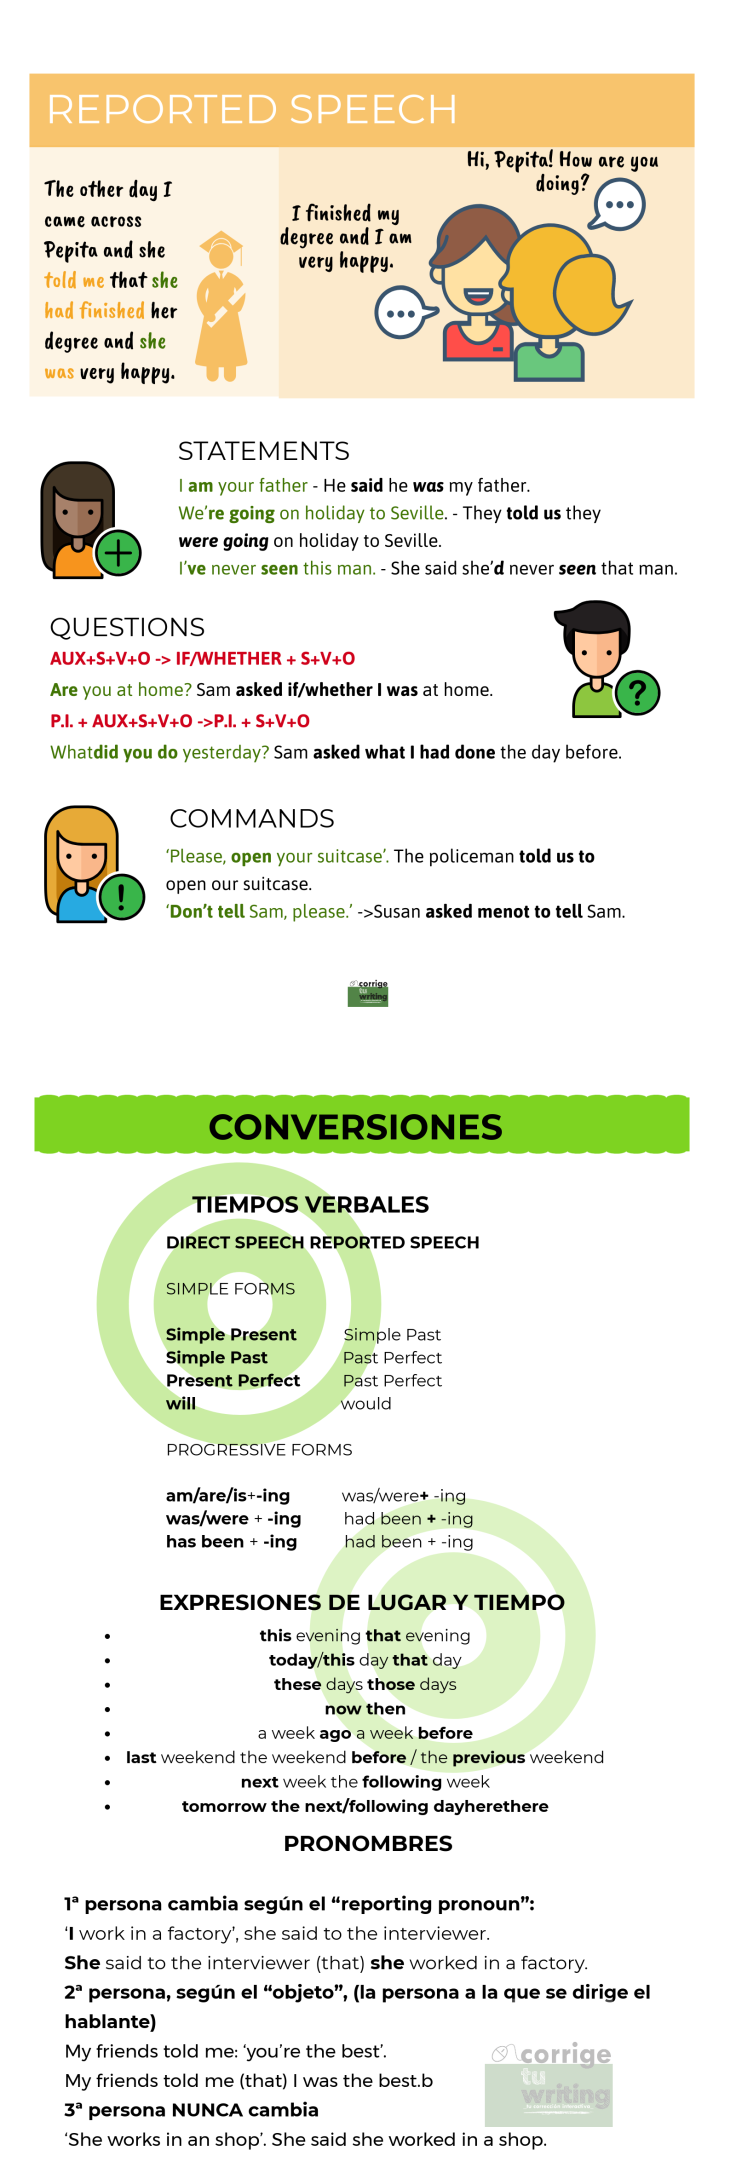 infografía reported speech estilo indirecto